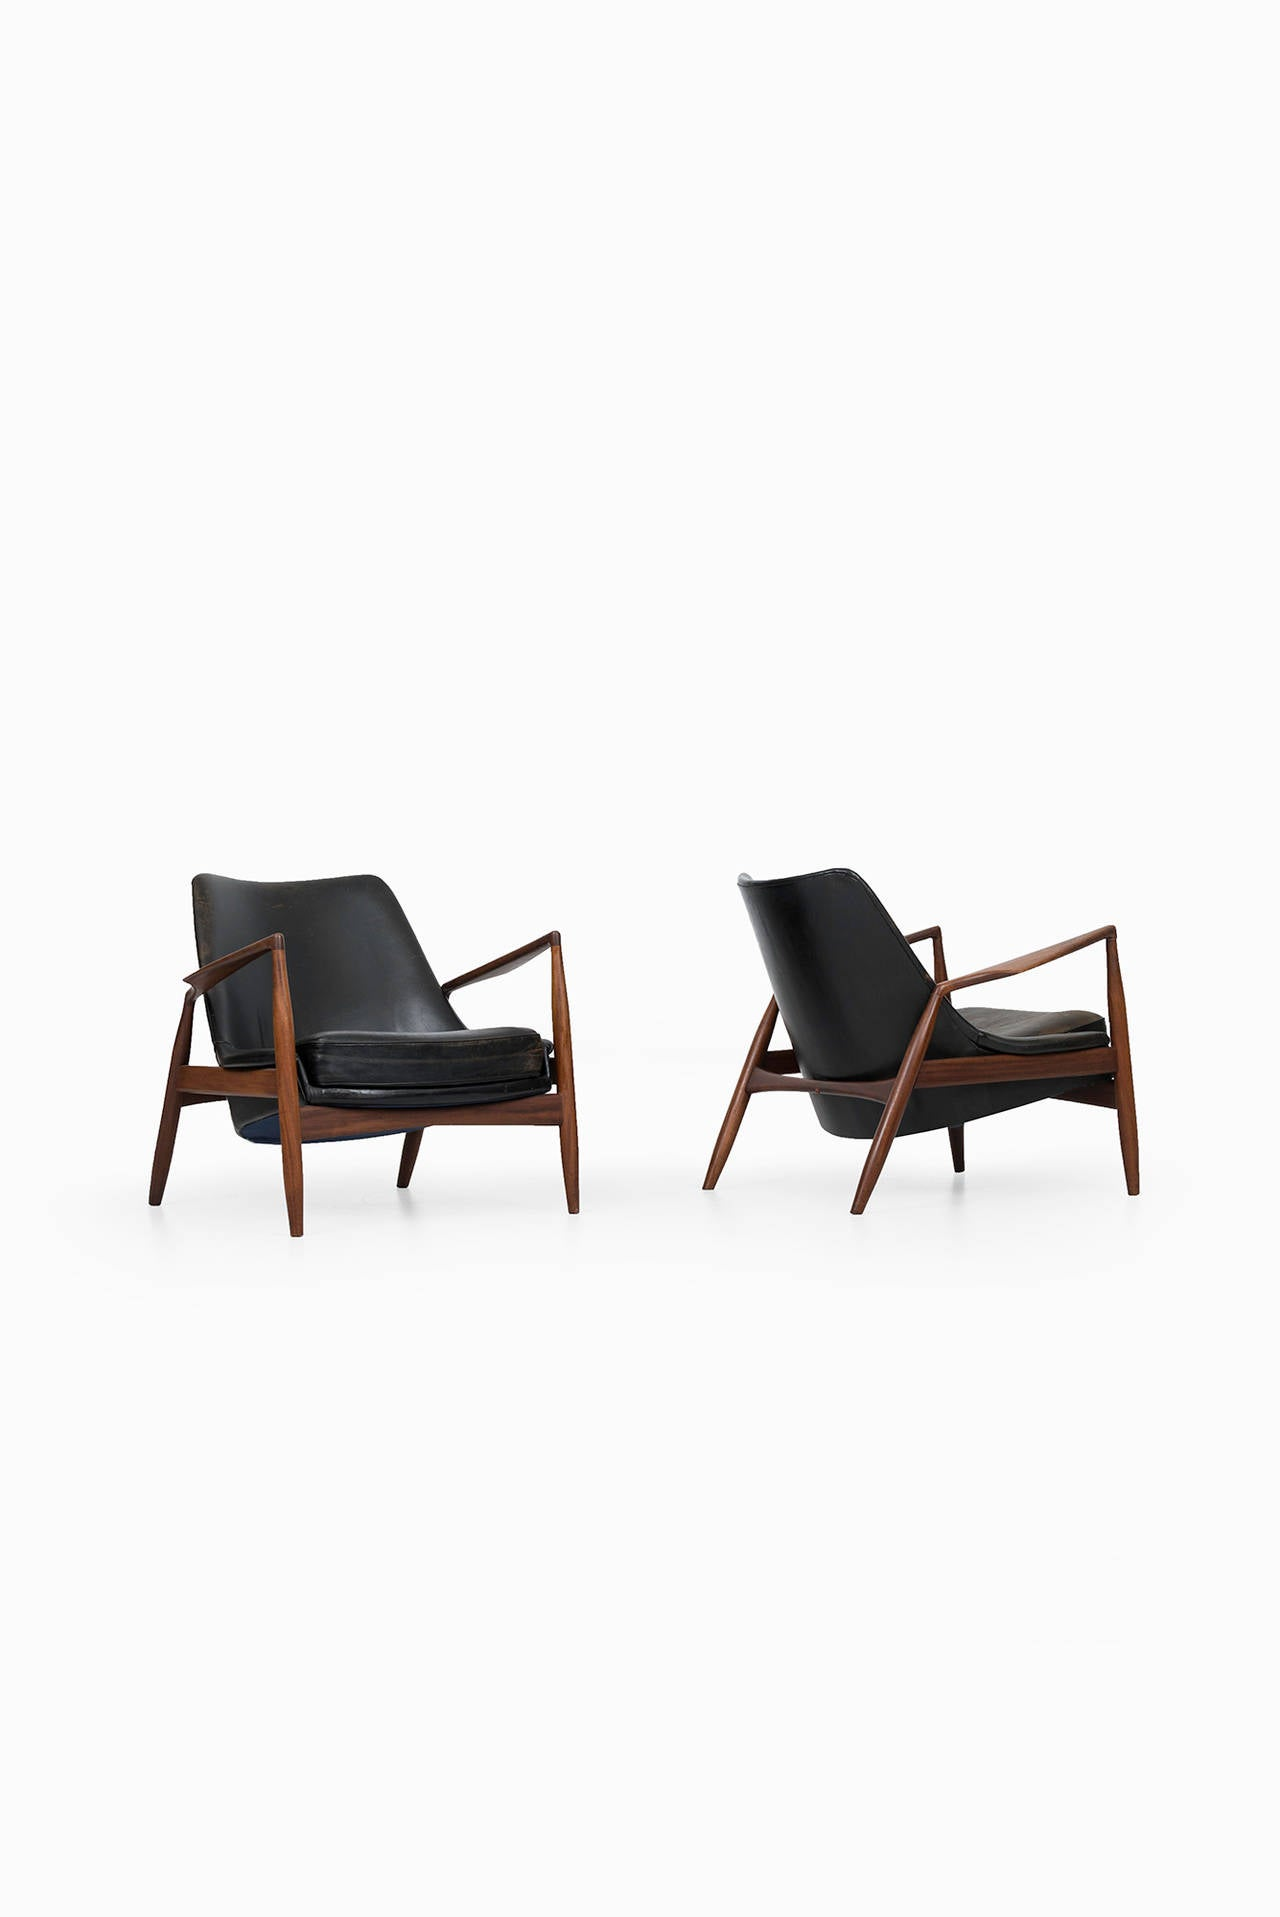 This sculptural pair of lounge chairs by ib kofod larsen is no longer - Ib Kofod Larsen Seal Easy Chairs By Ope In Sweden 2